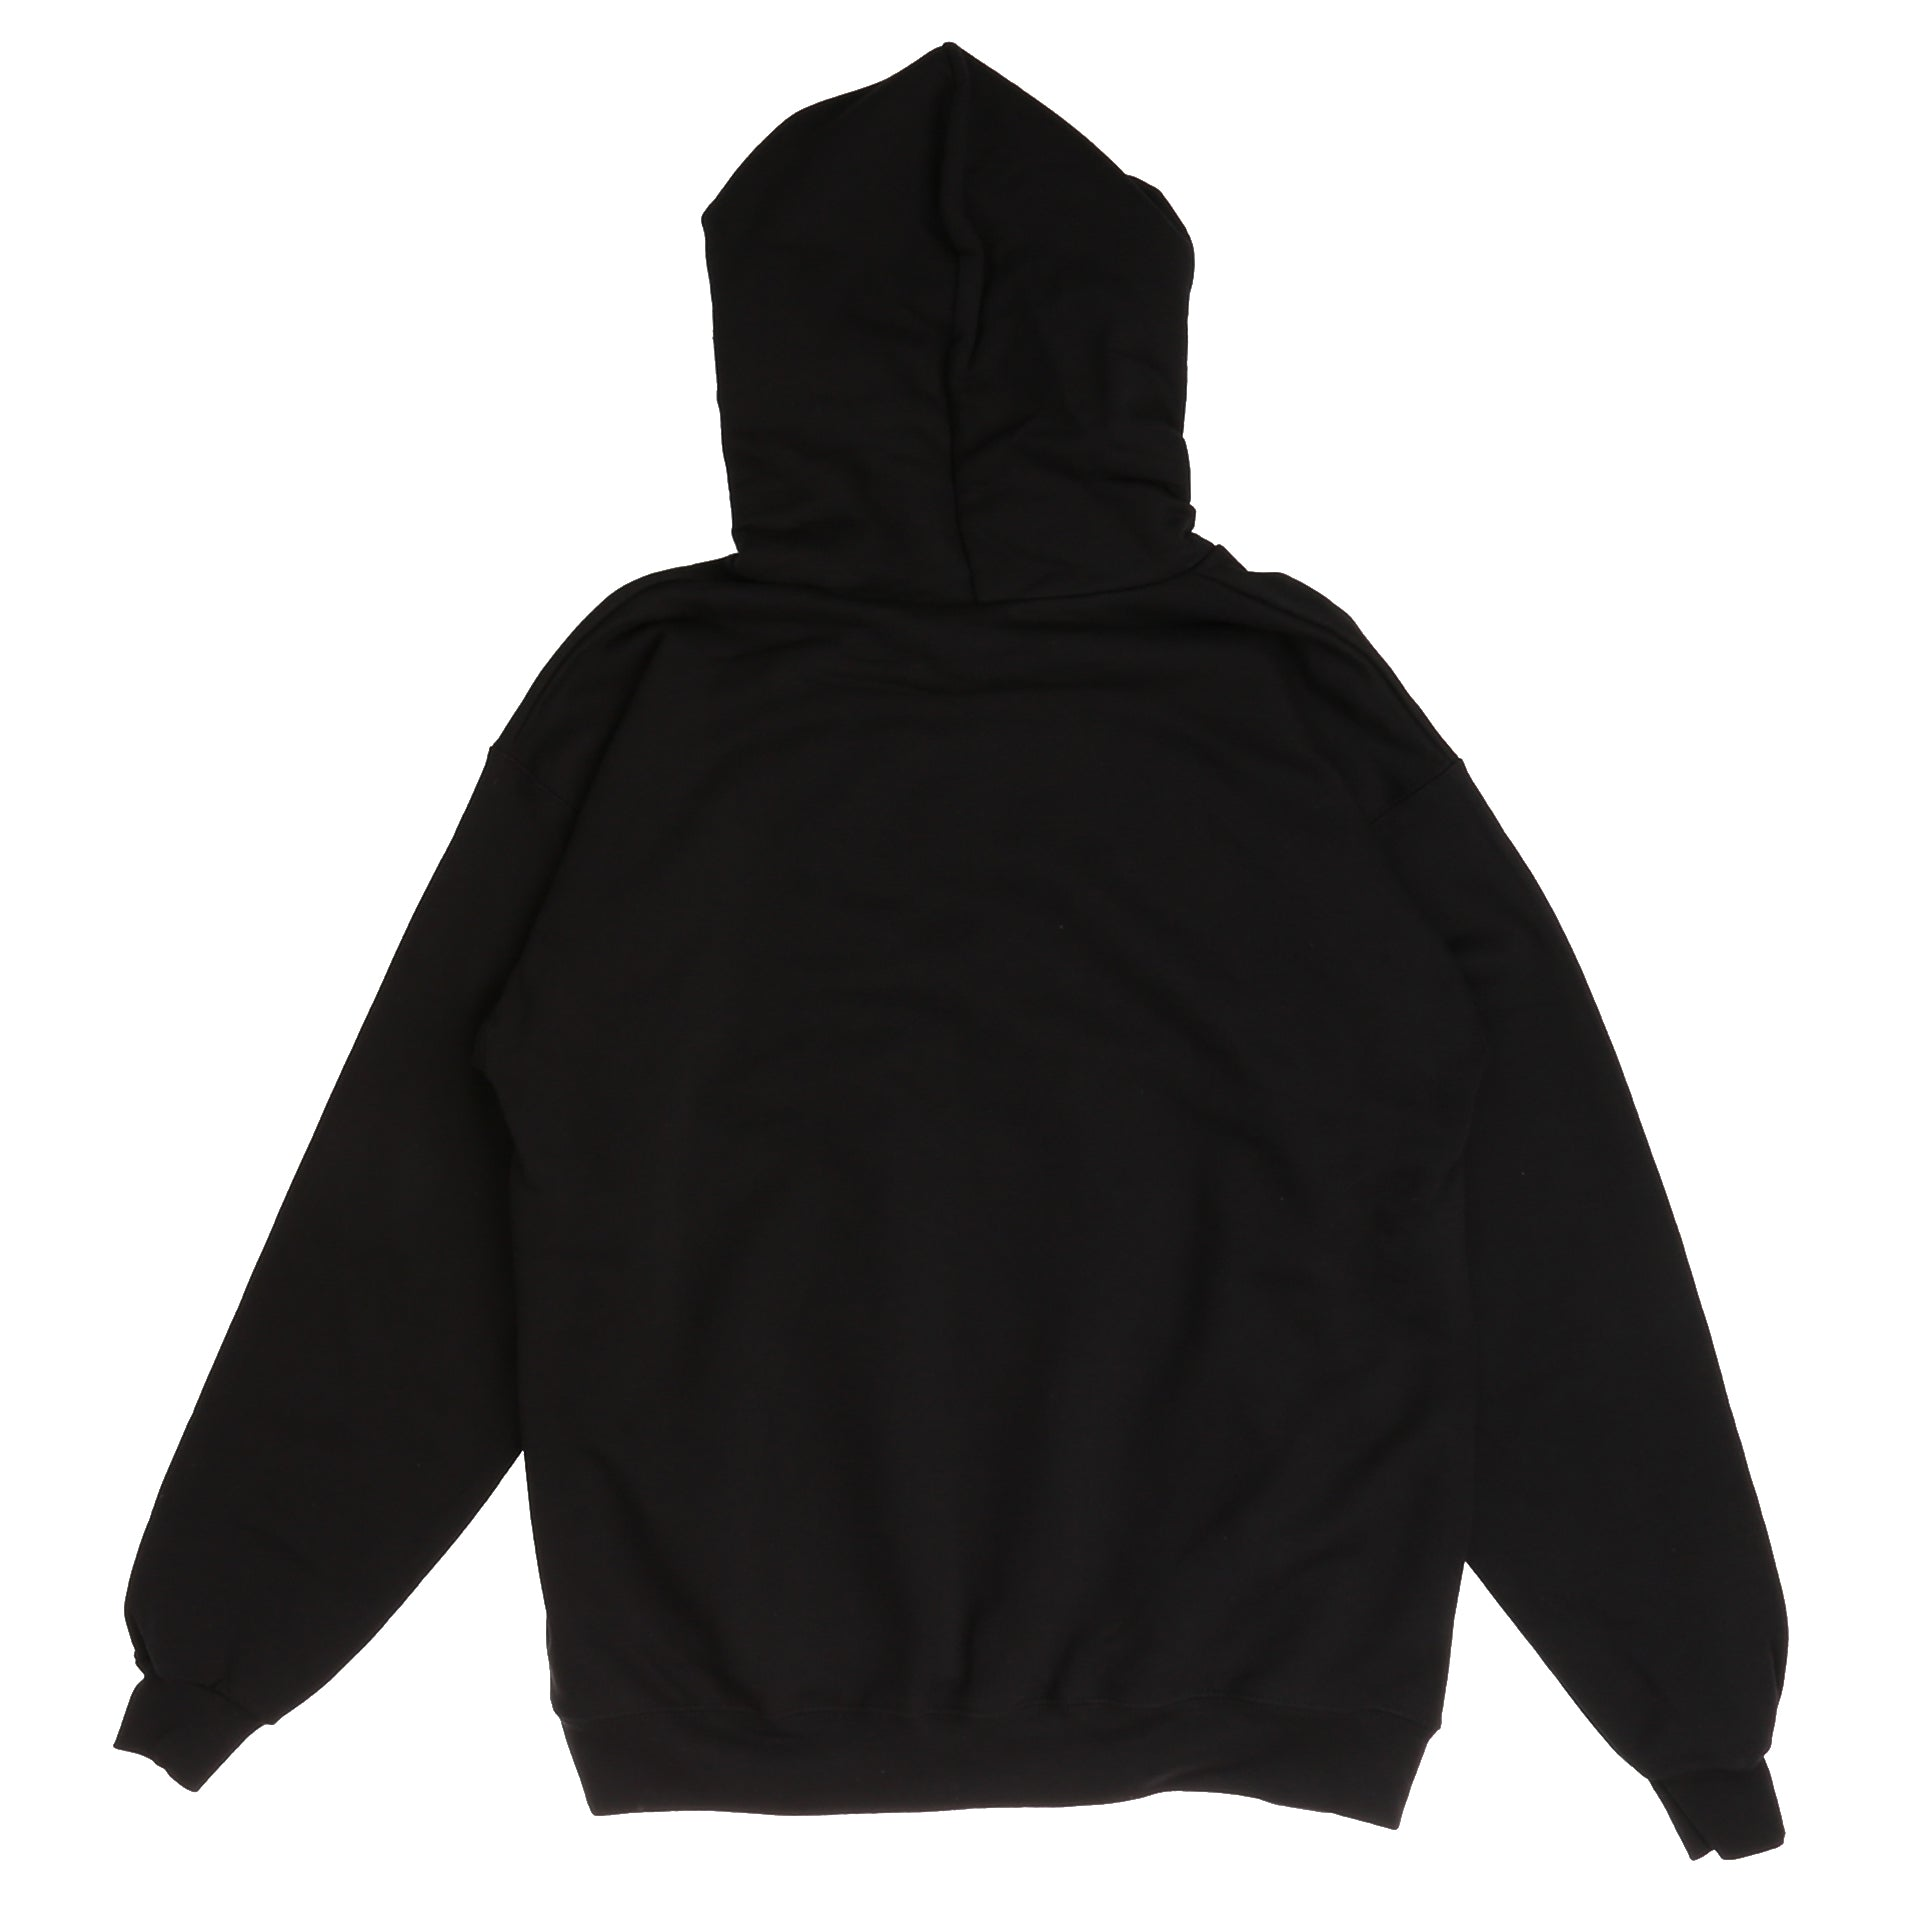 863c62d24 Thrasher Skate Mag Hooded Sweatshirt - Black